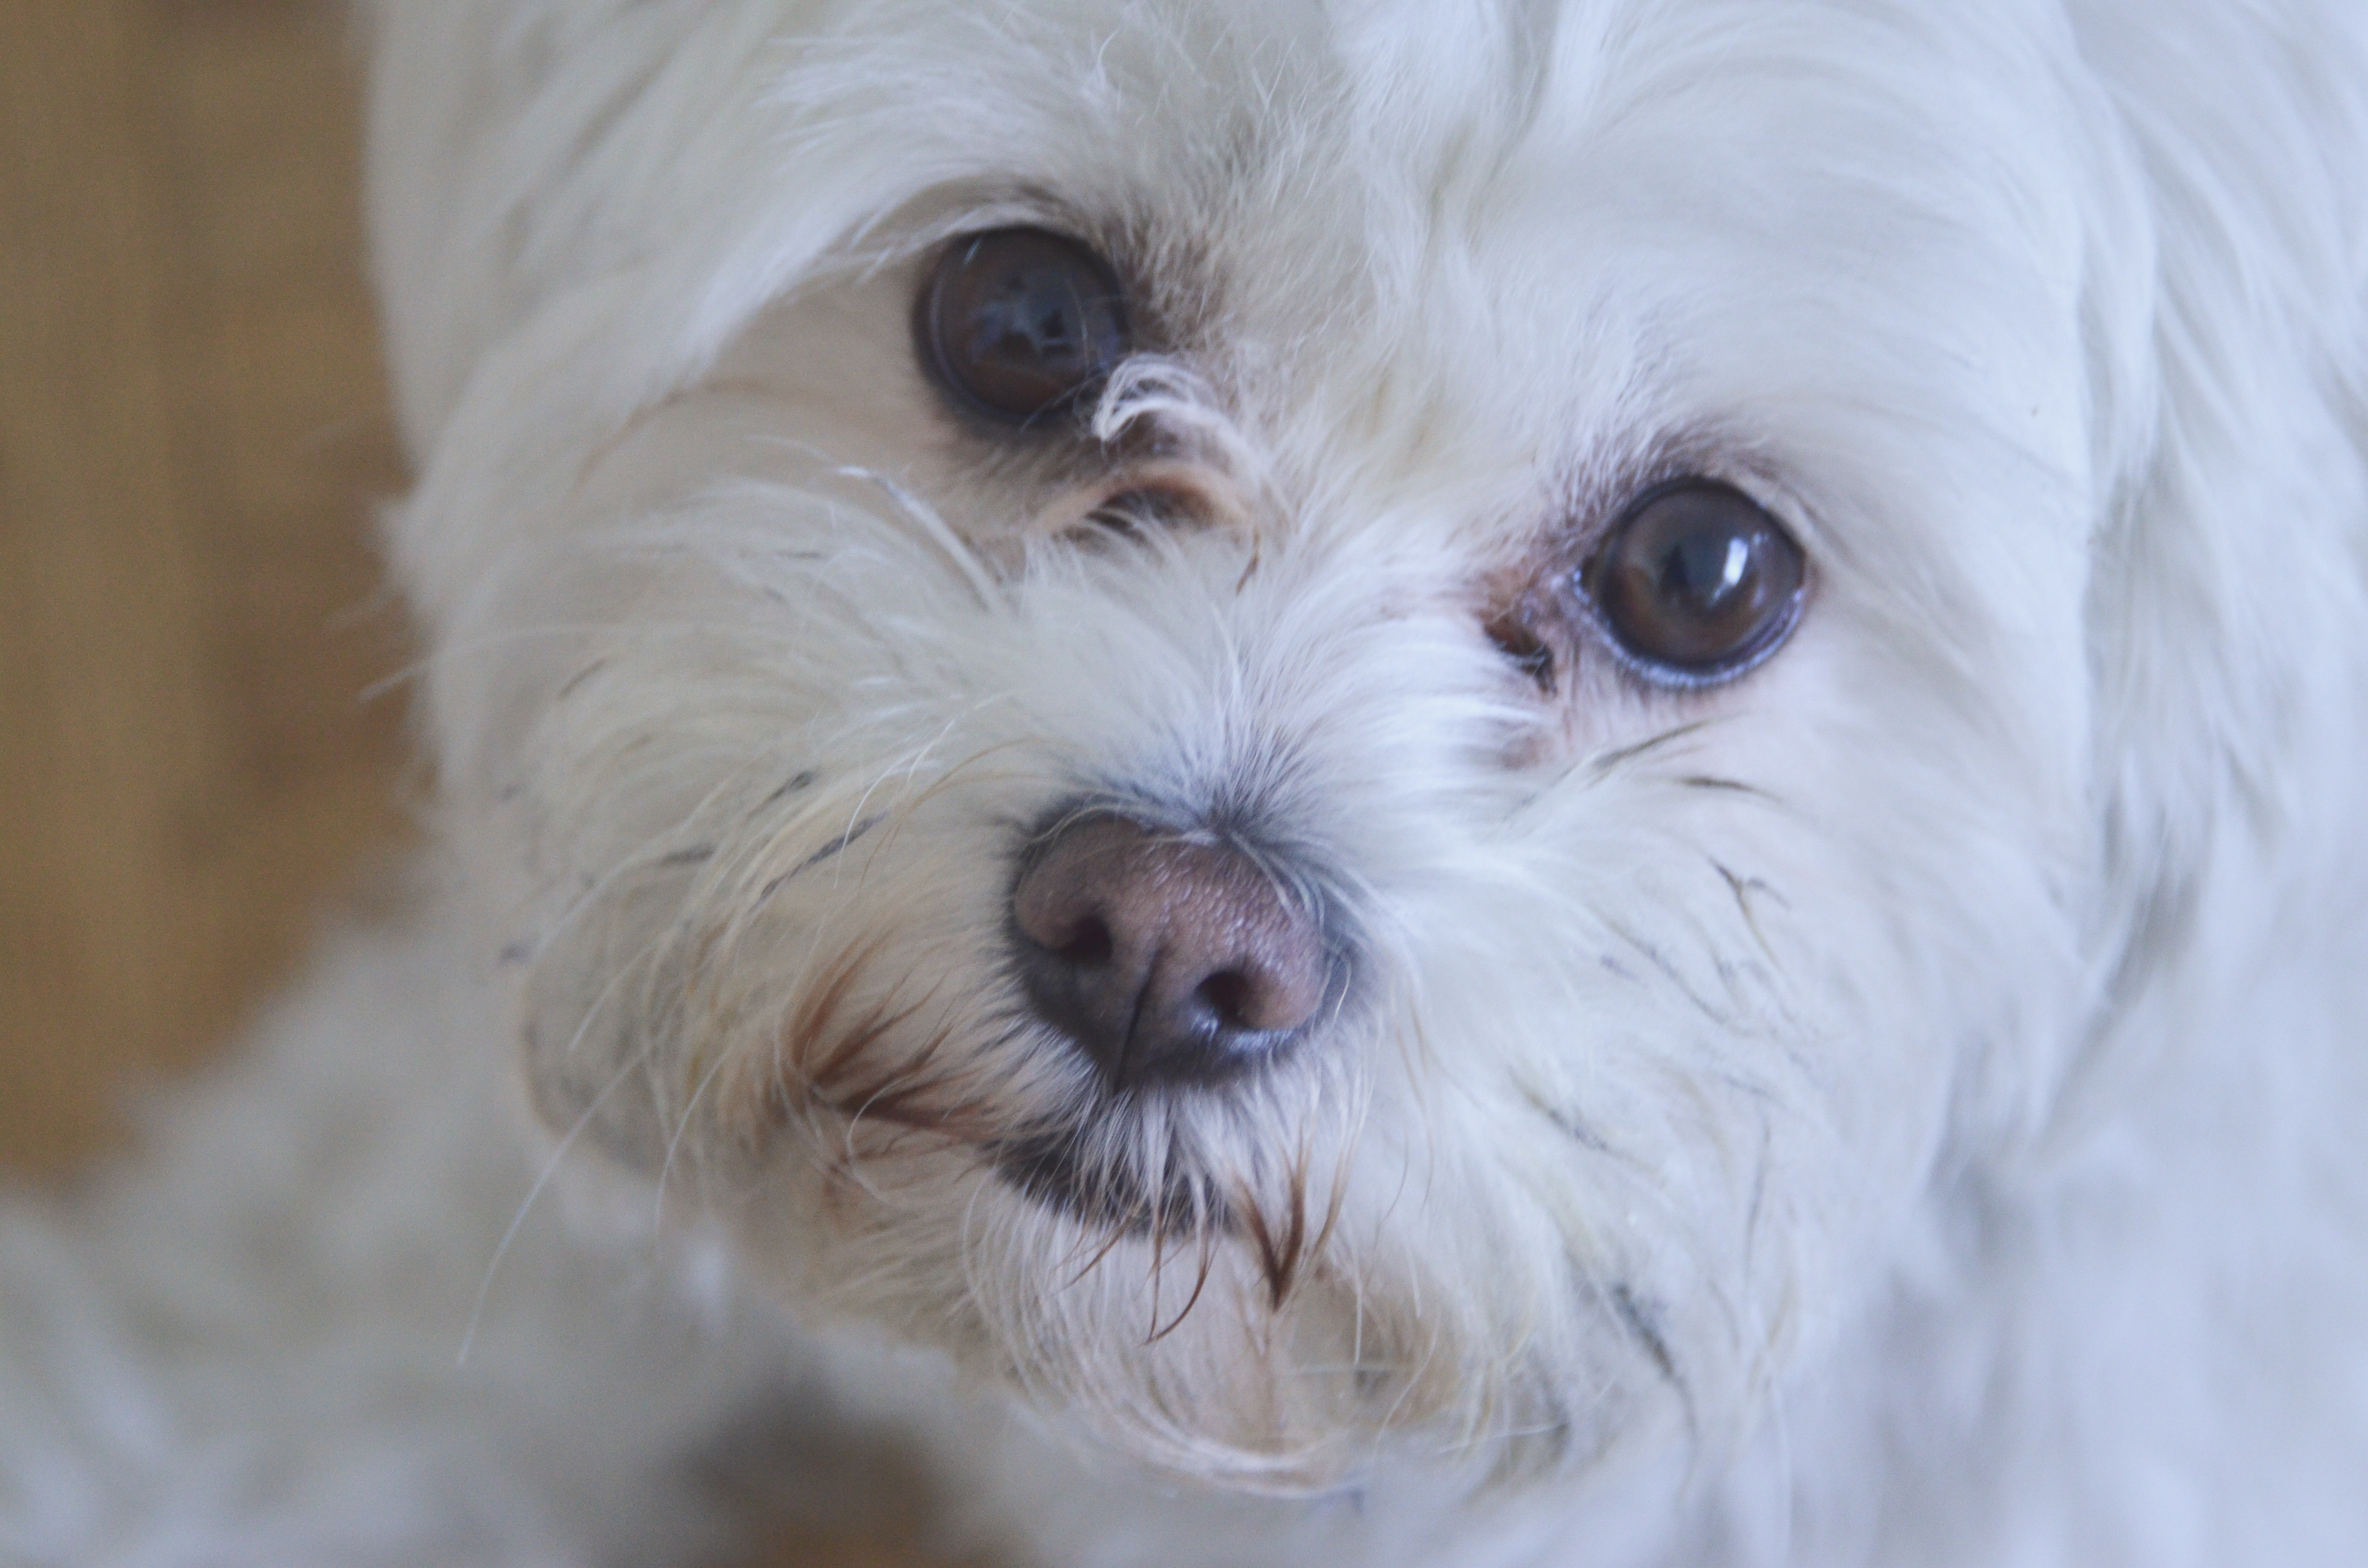 Cute dog pictures free download